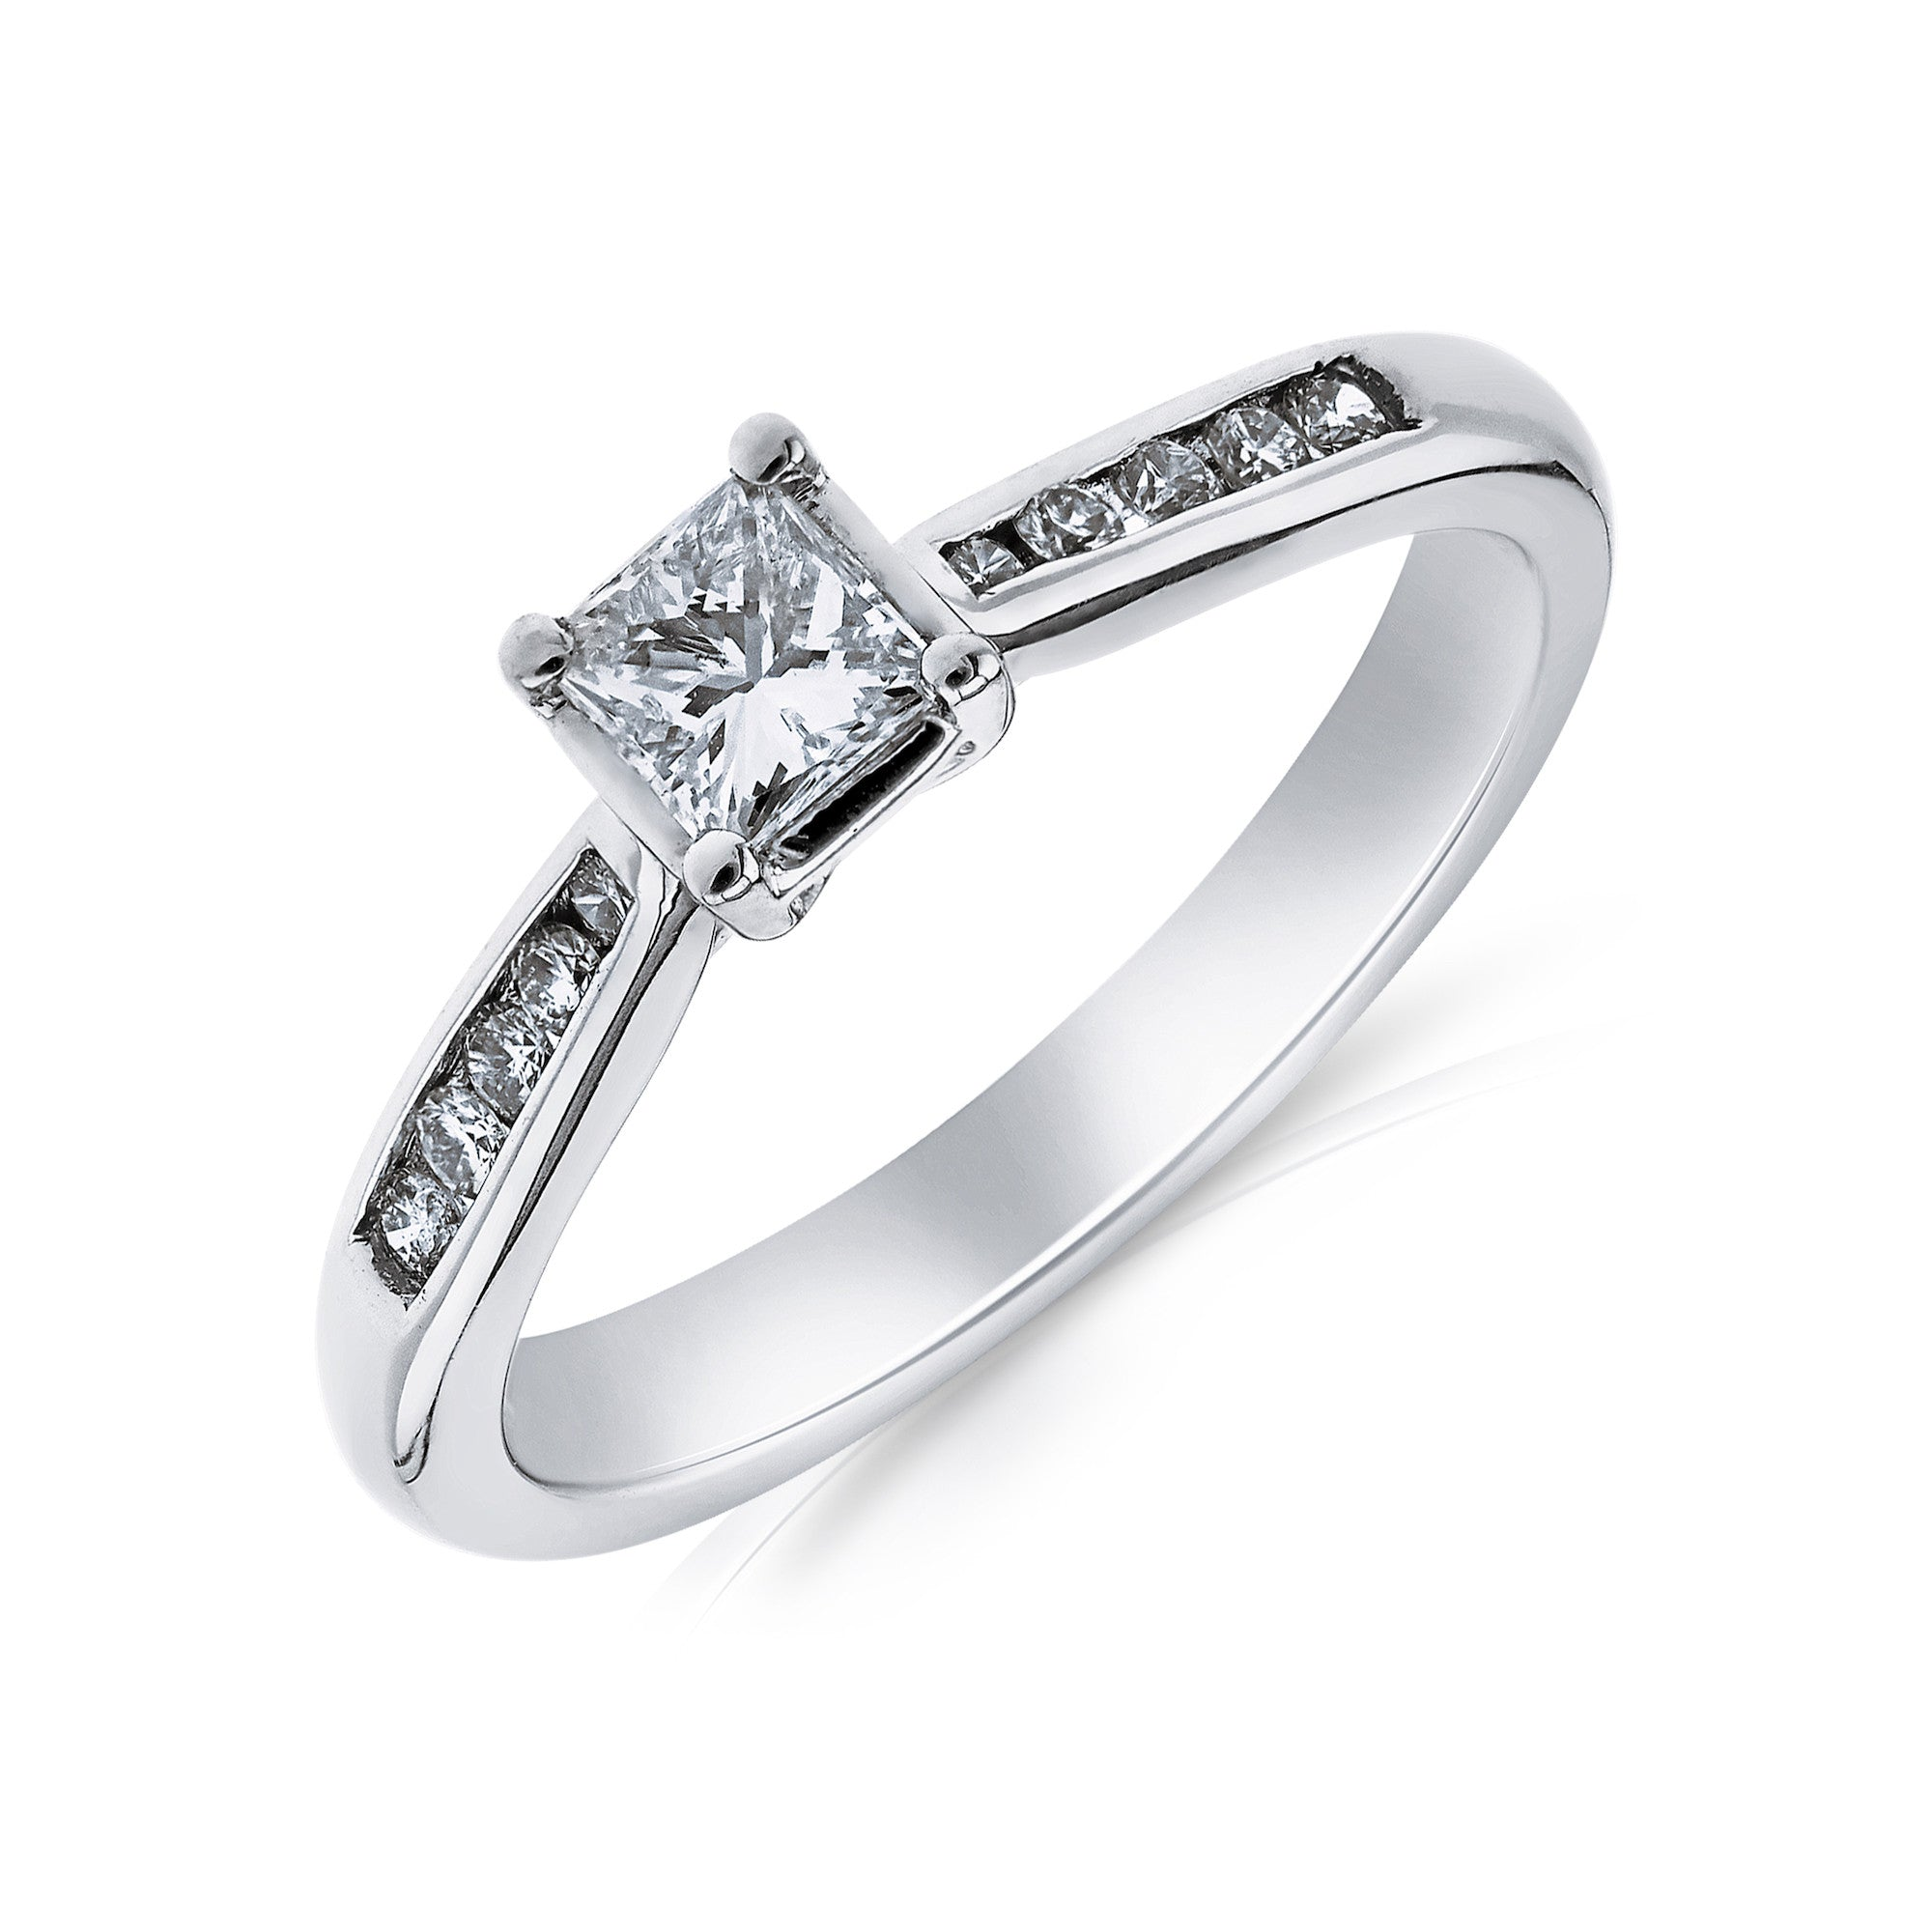 vendor cf daimond type diamond rings ring solitaire cartier engagement round jewellery products oliver